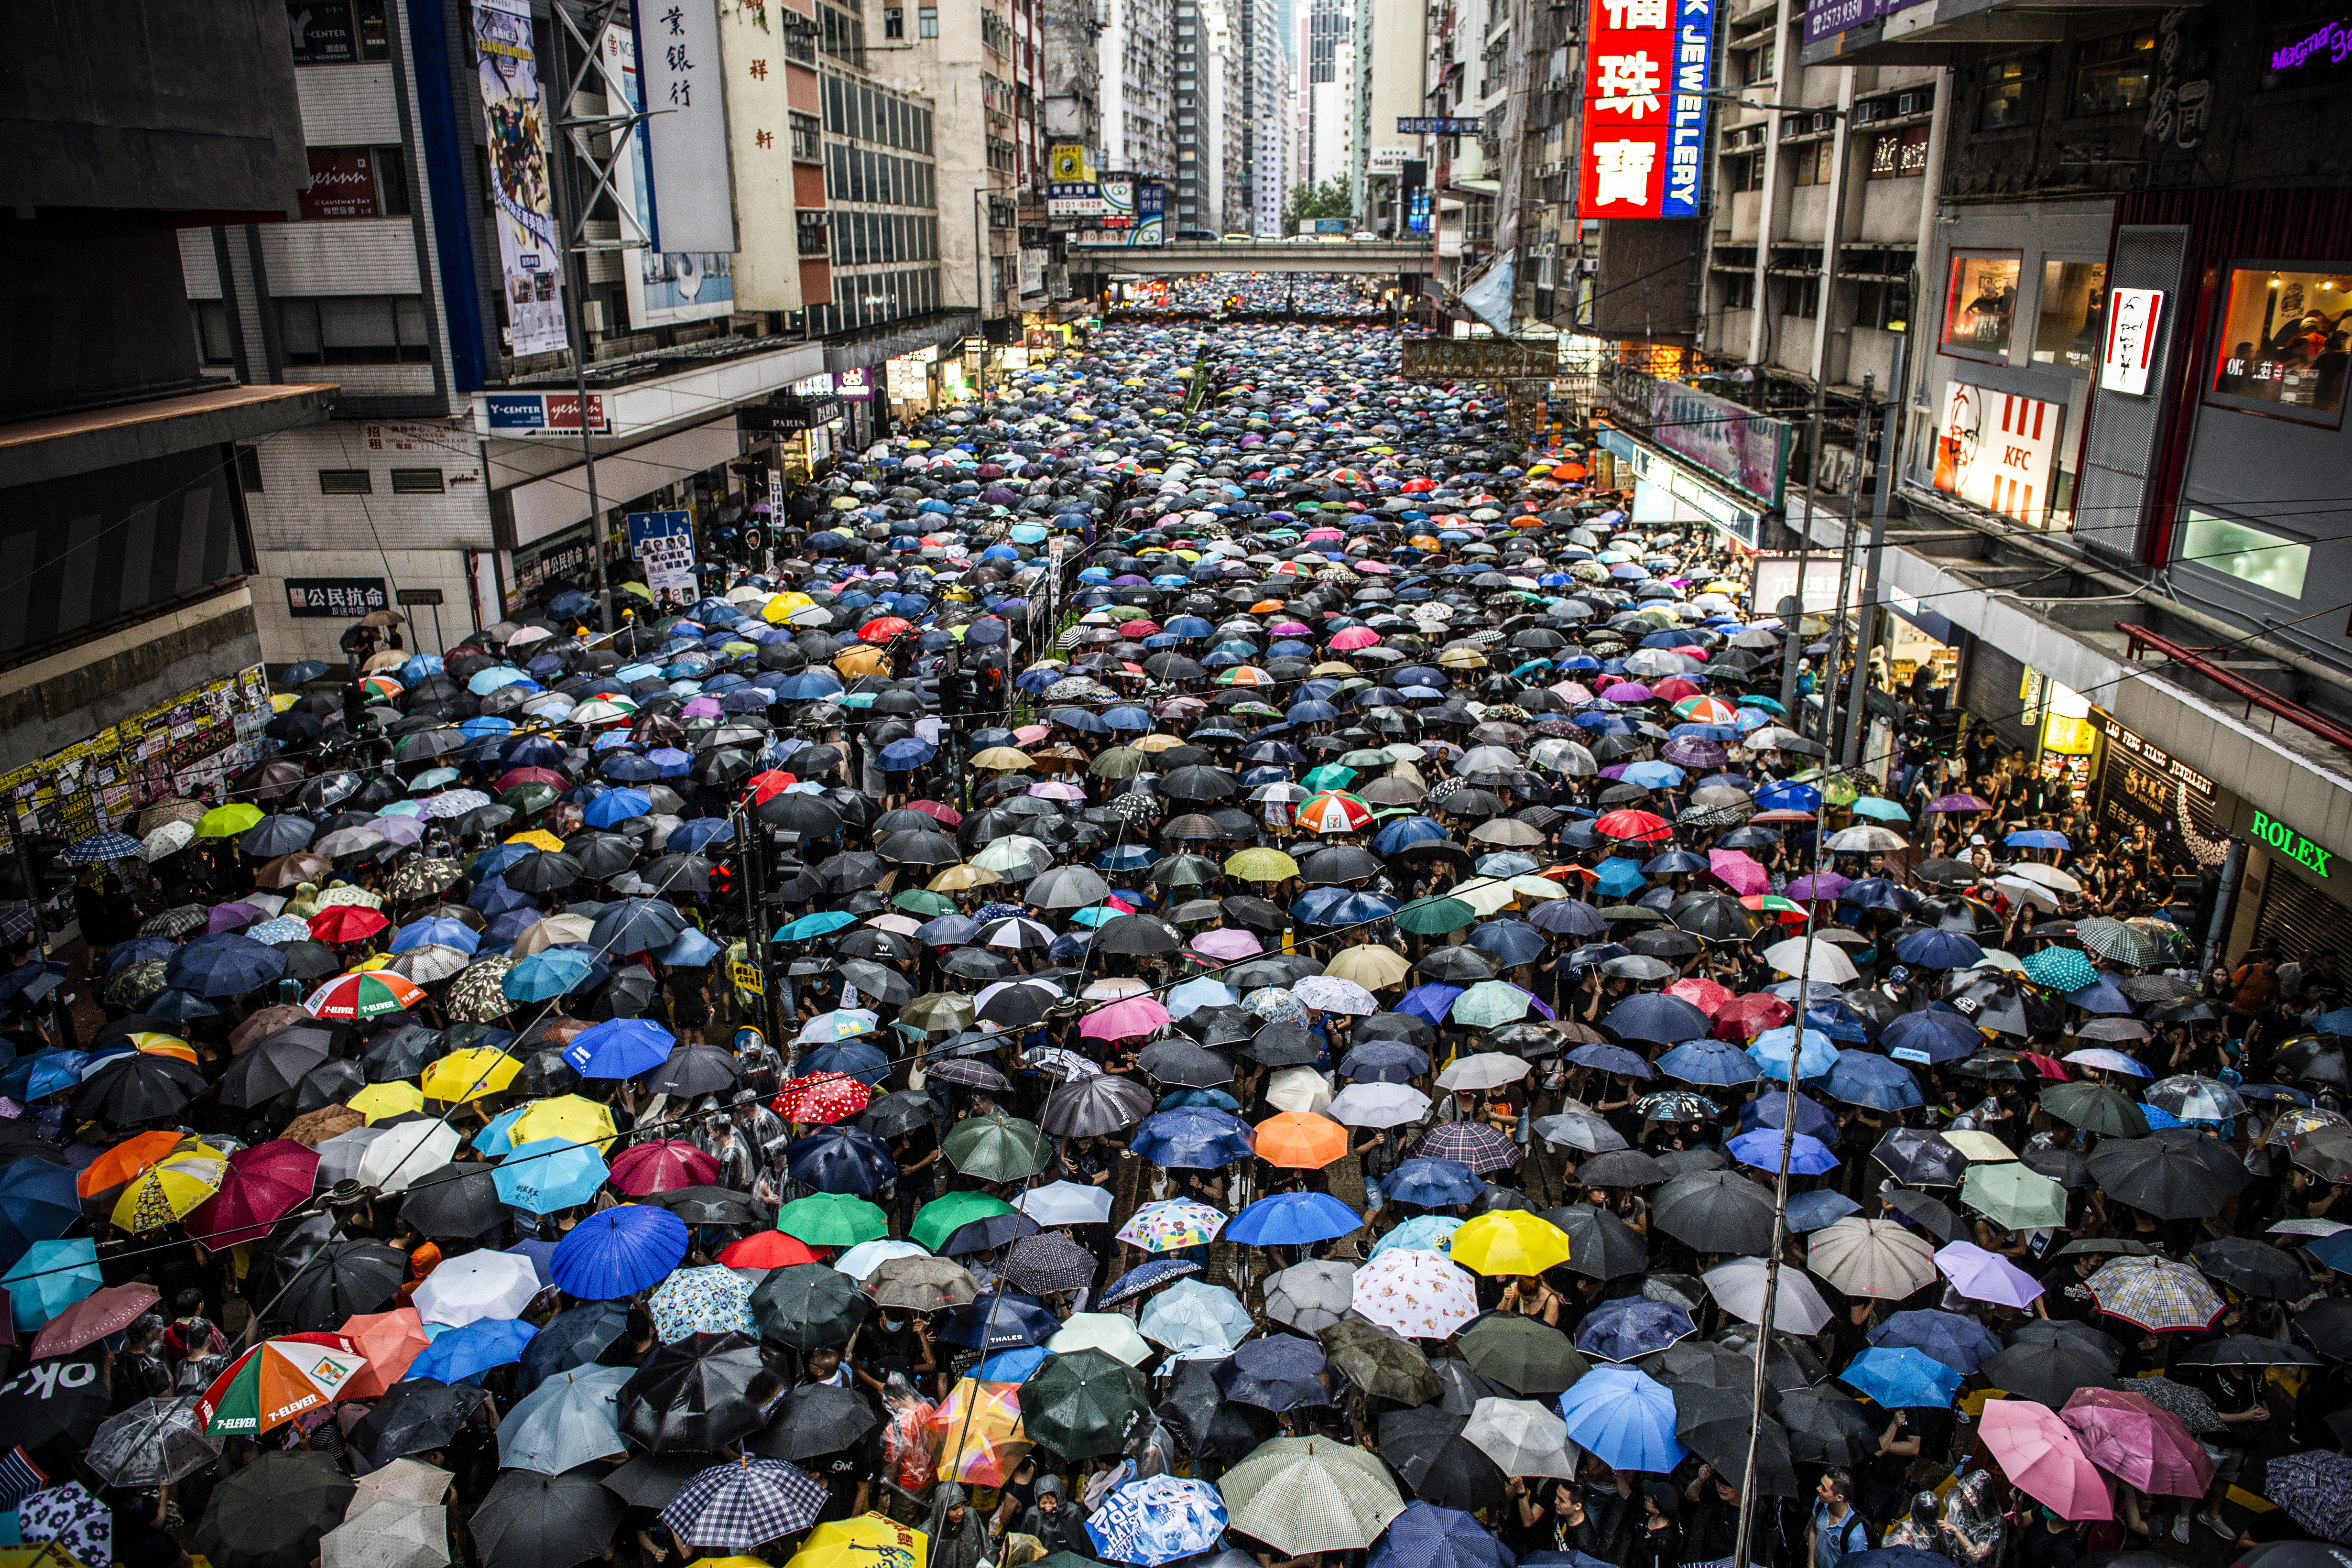 A street in Hong Kong filled with protesters under umbrellas.